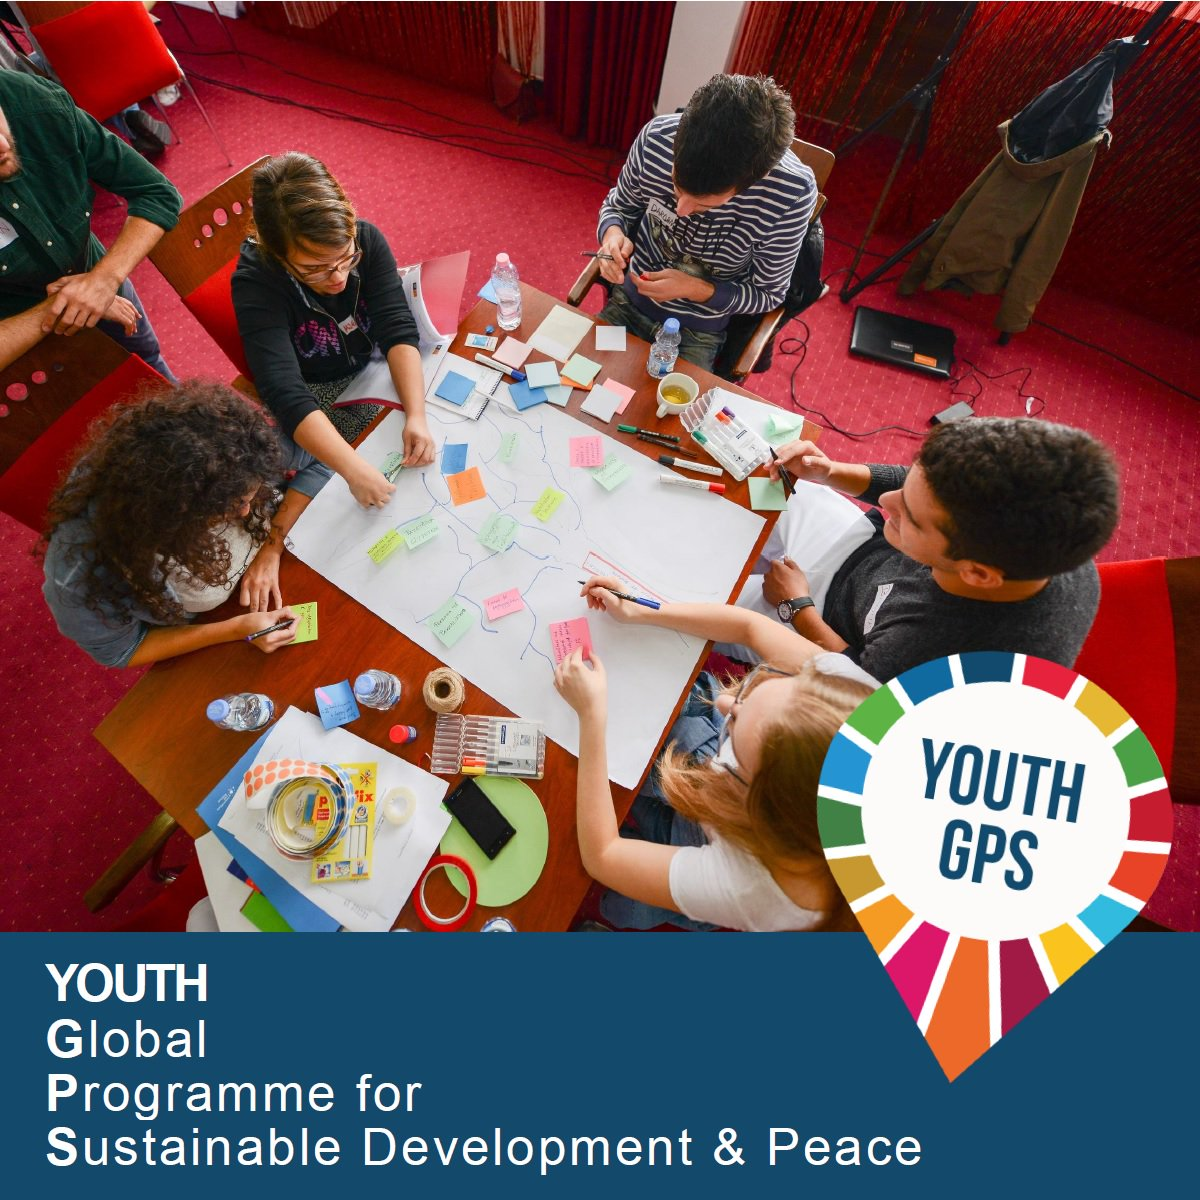 #YouthGPS is @UNDP's multi-level response to the needs of young people | Take a look: https://t.co/Ra5cZGAlY3 https://t.co/ECslnMYusD